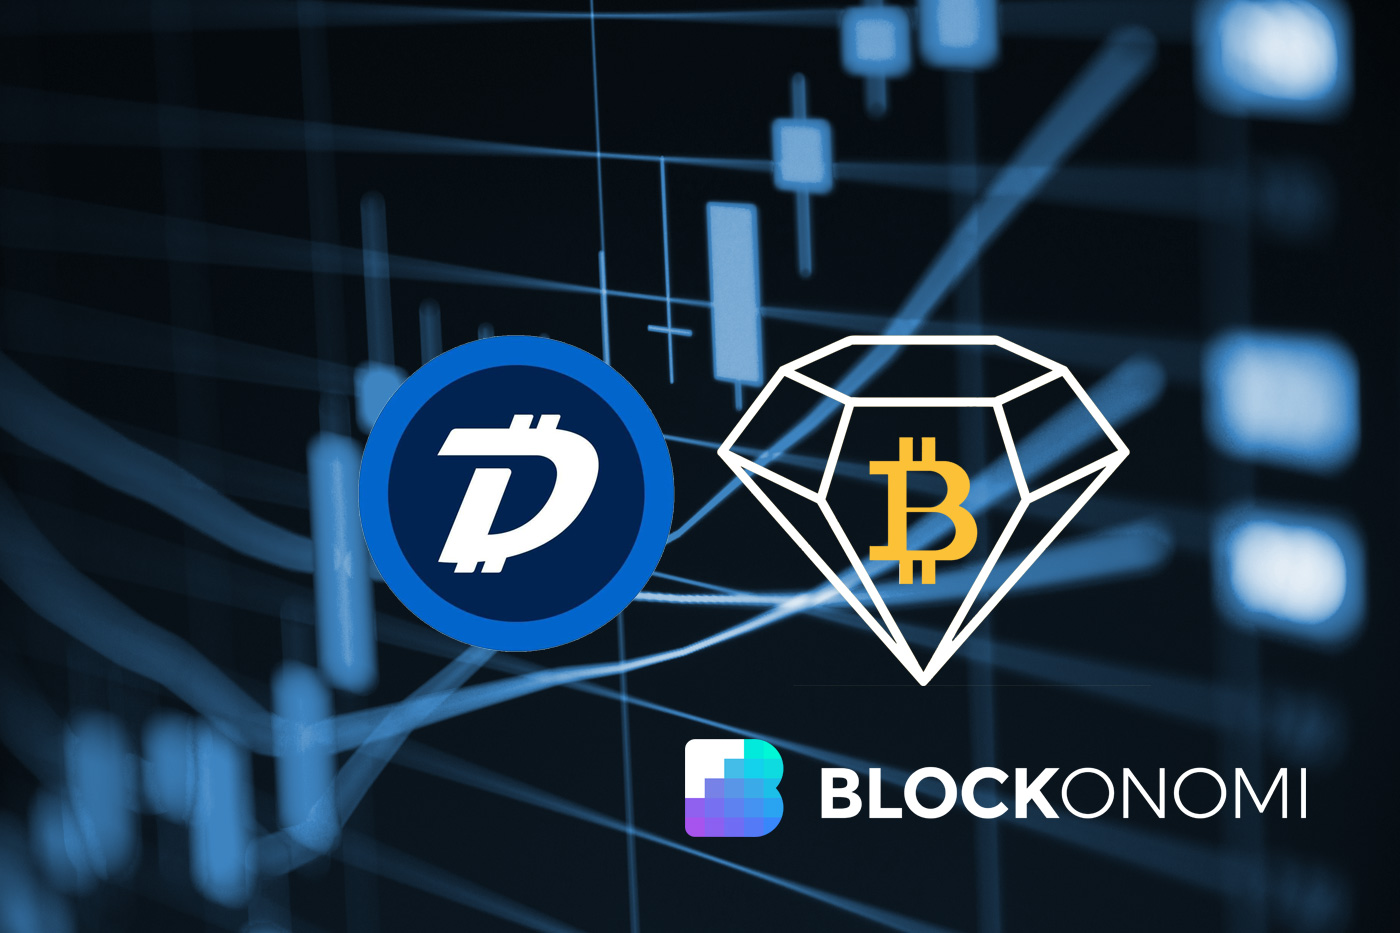 DGB Price & Bitcoin Private price